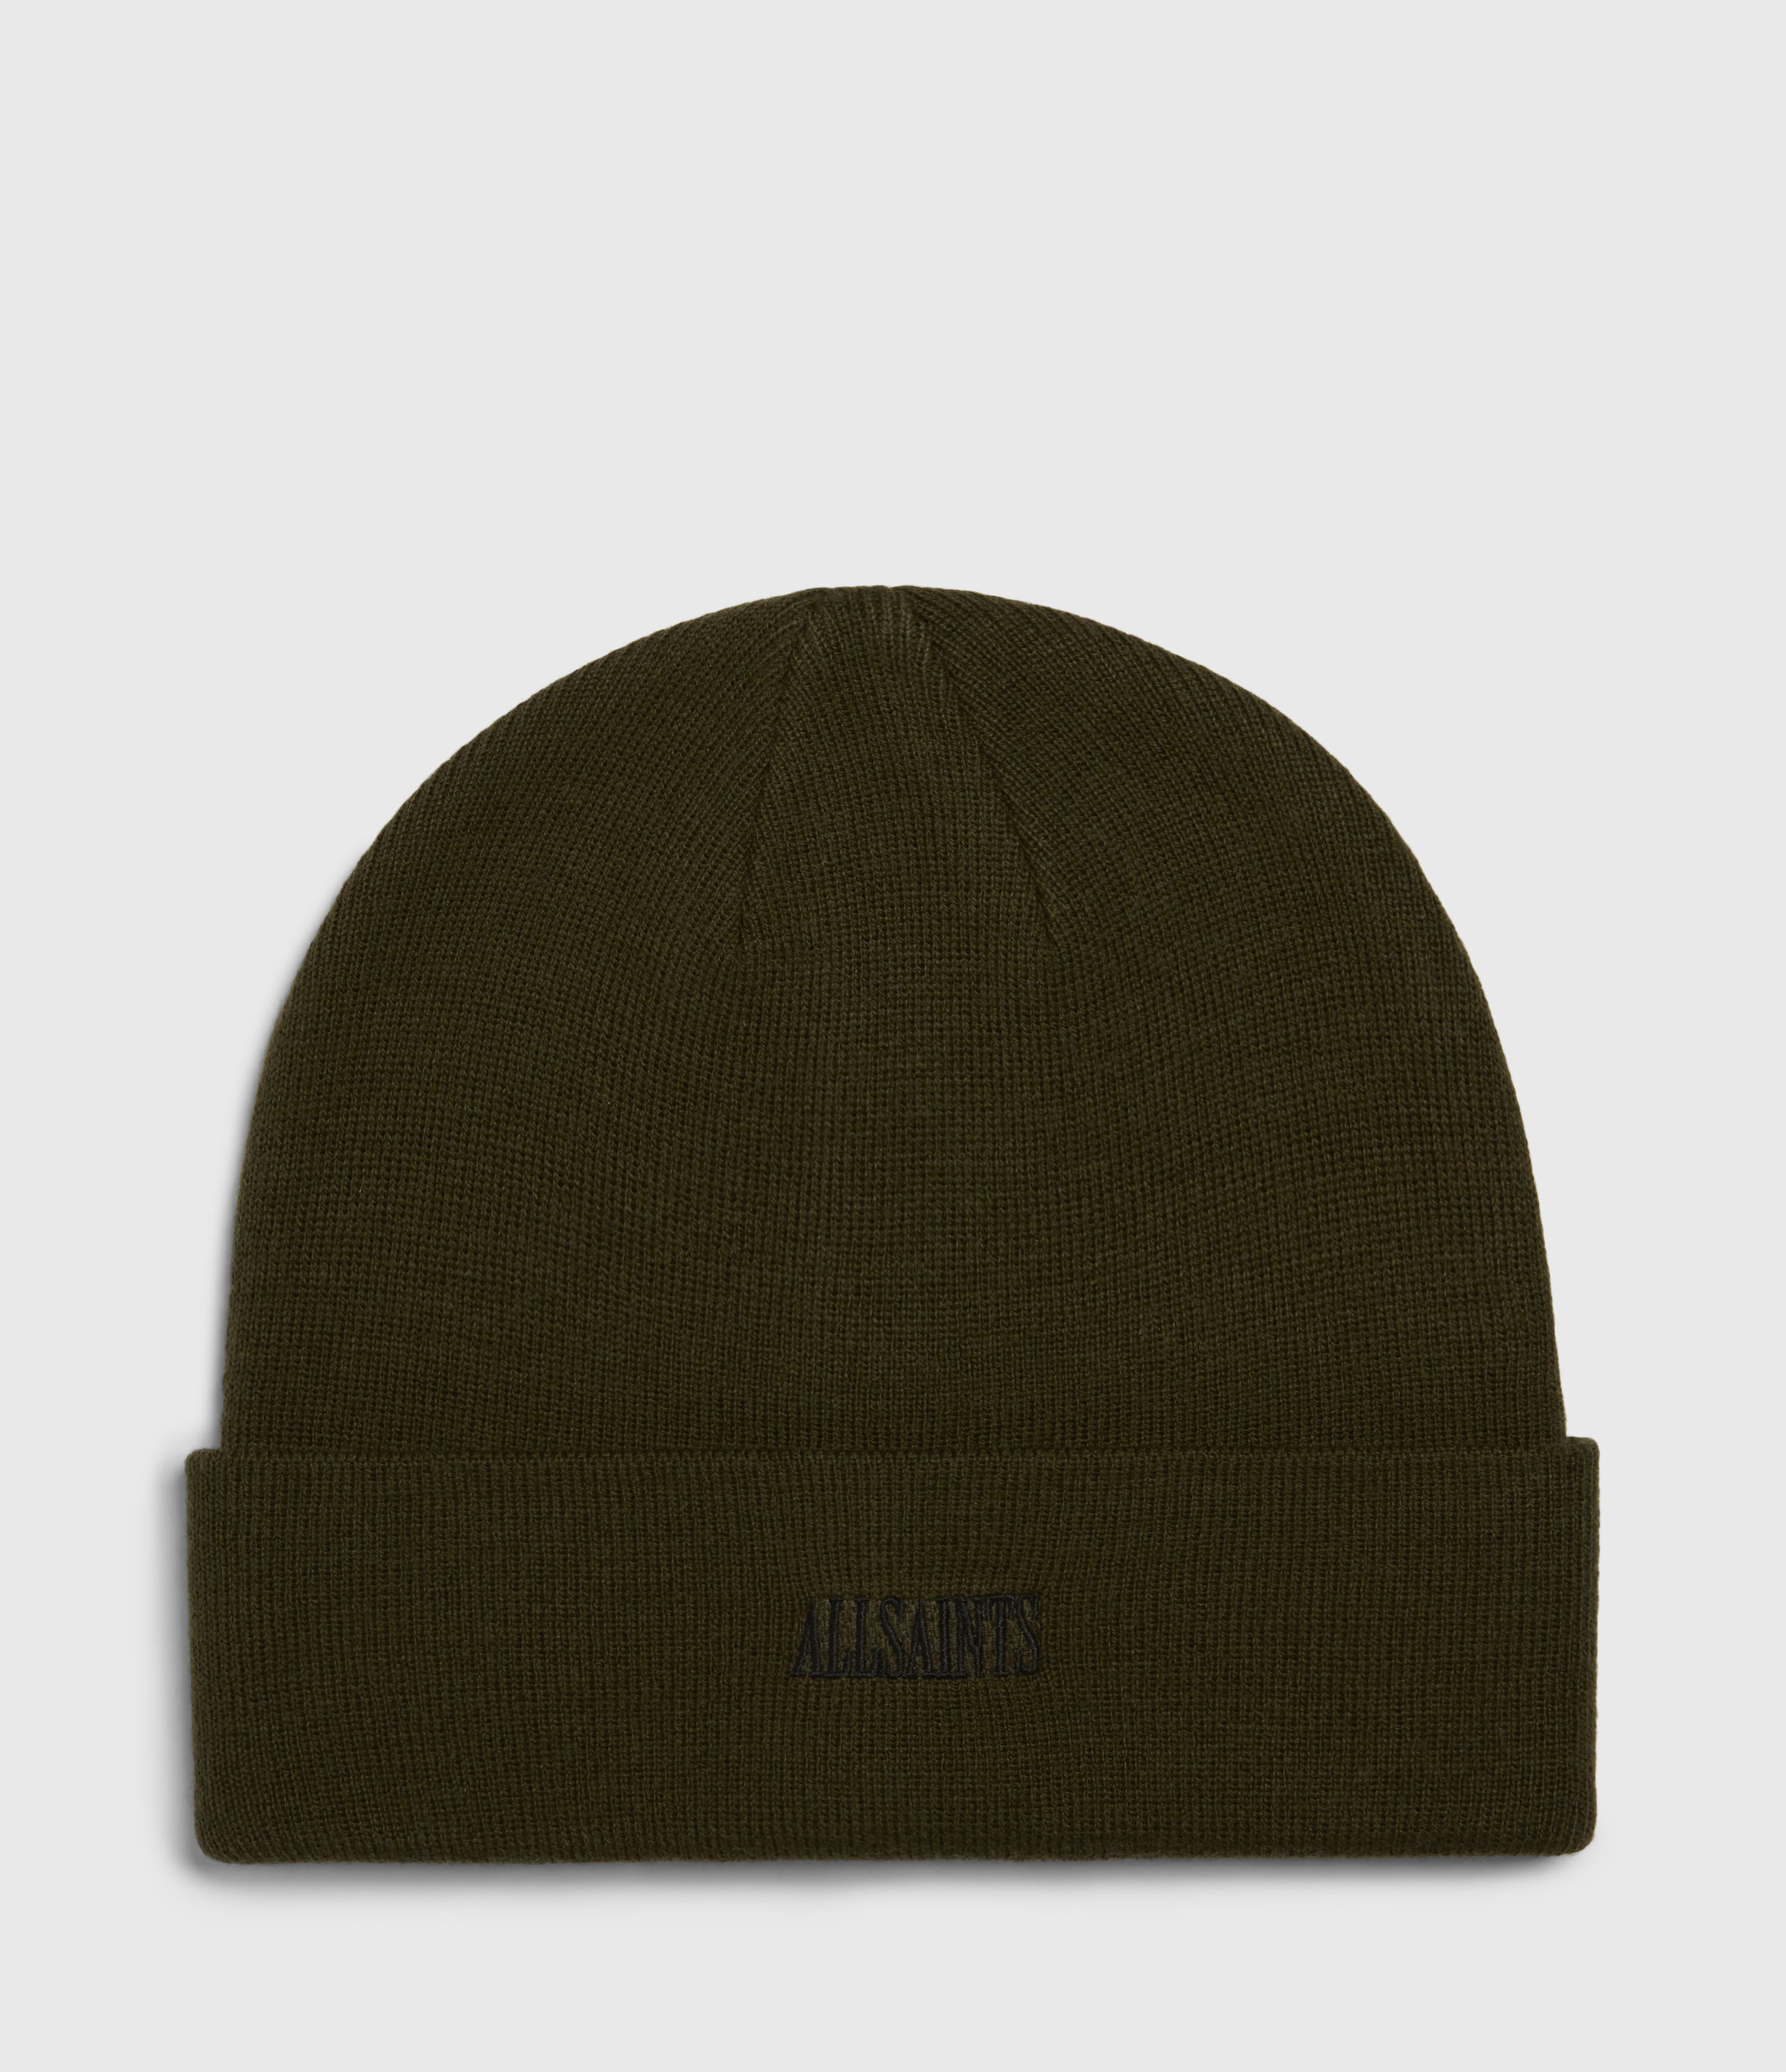 AllSaints Men's Embroidered State Wool Blend Beanie